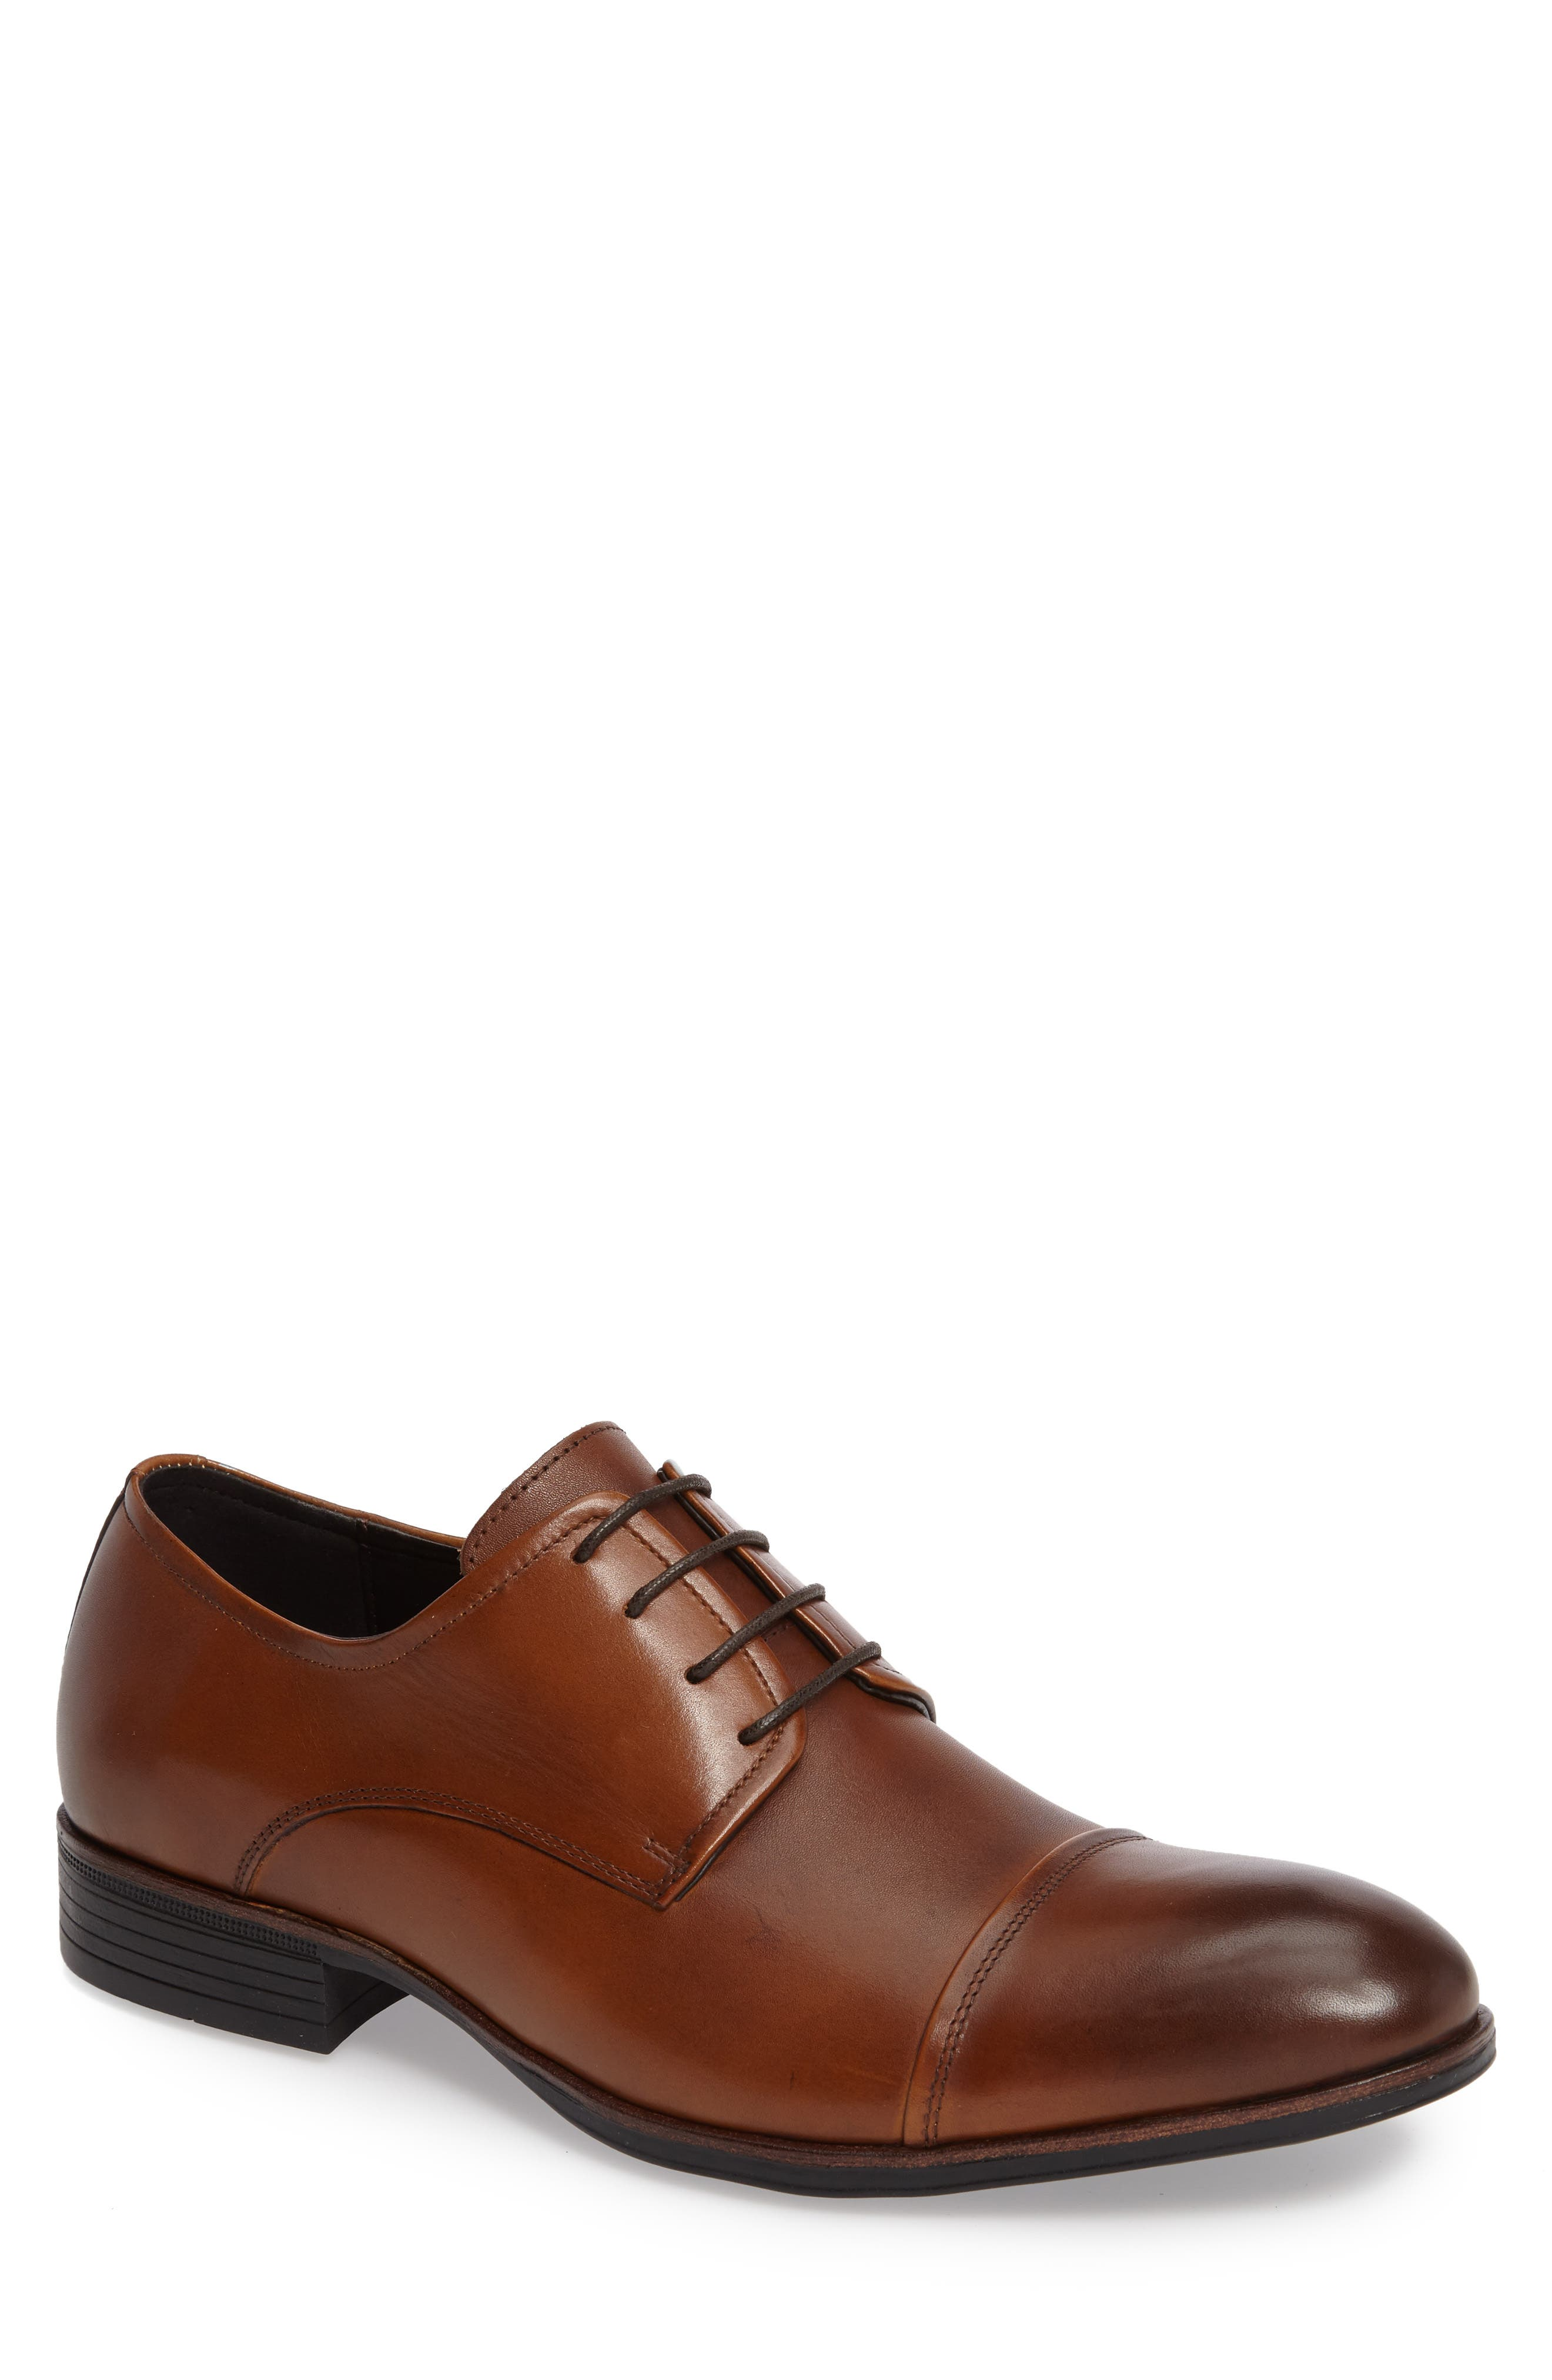 REACTION KENNETH COLE Brush Stroke Cap Toe Derby